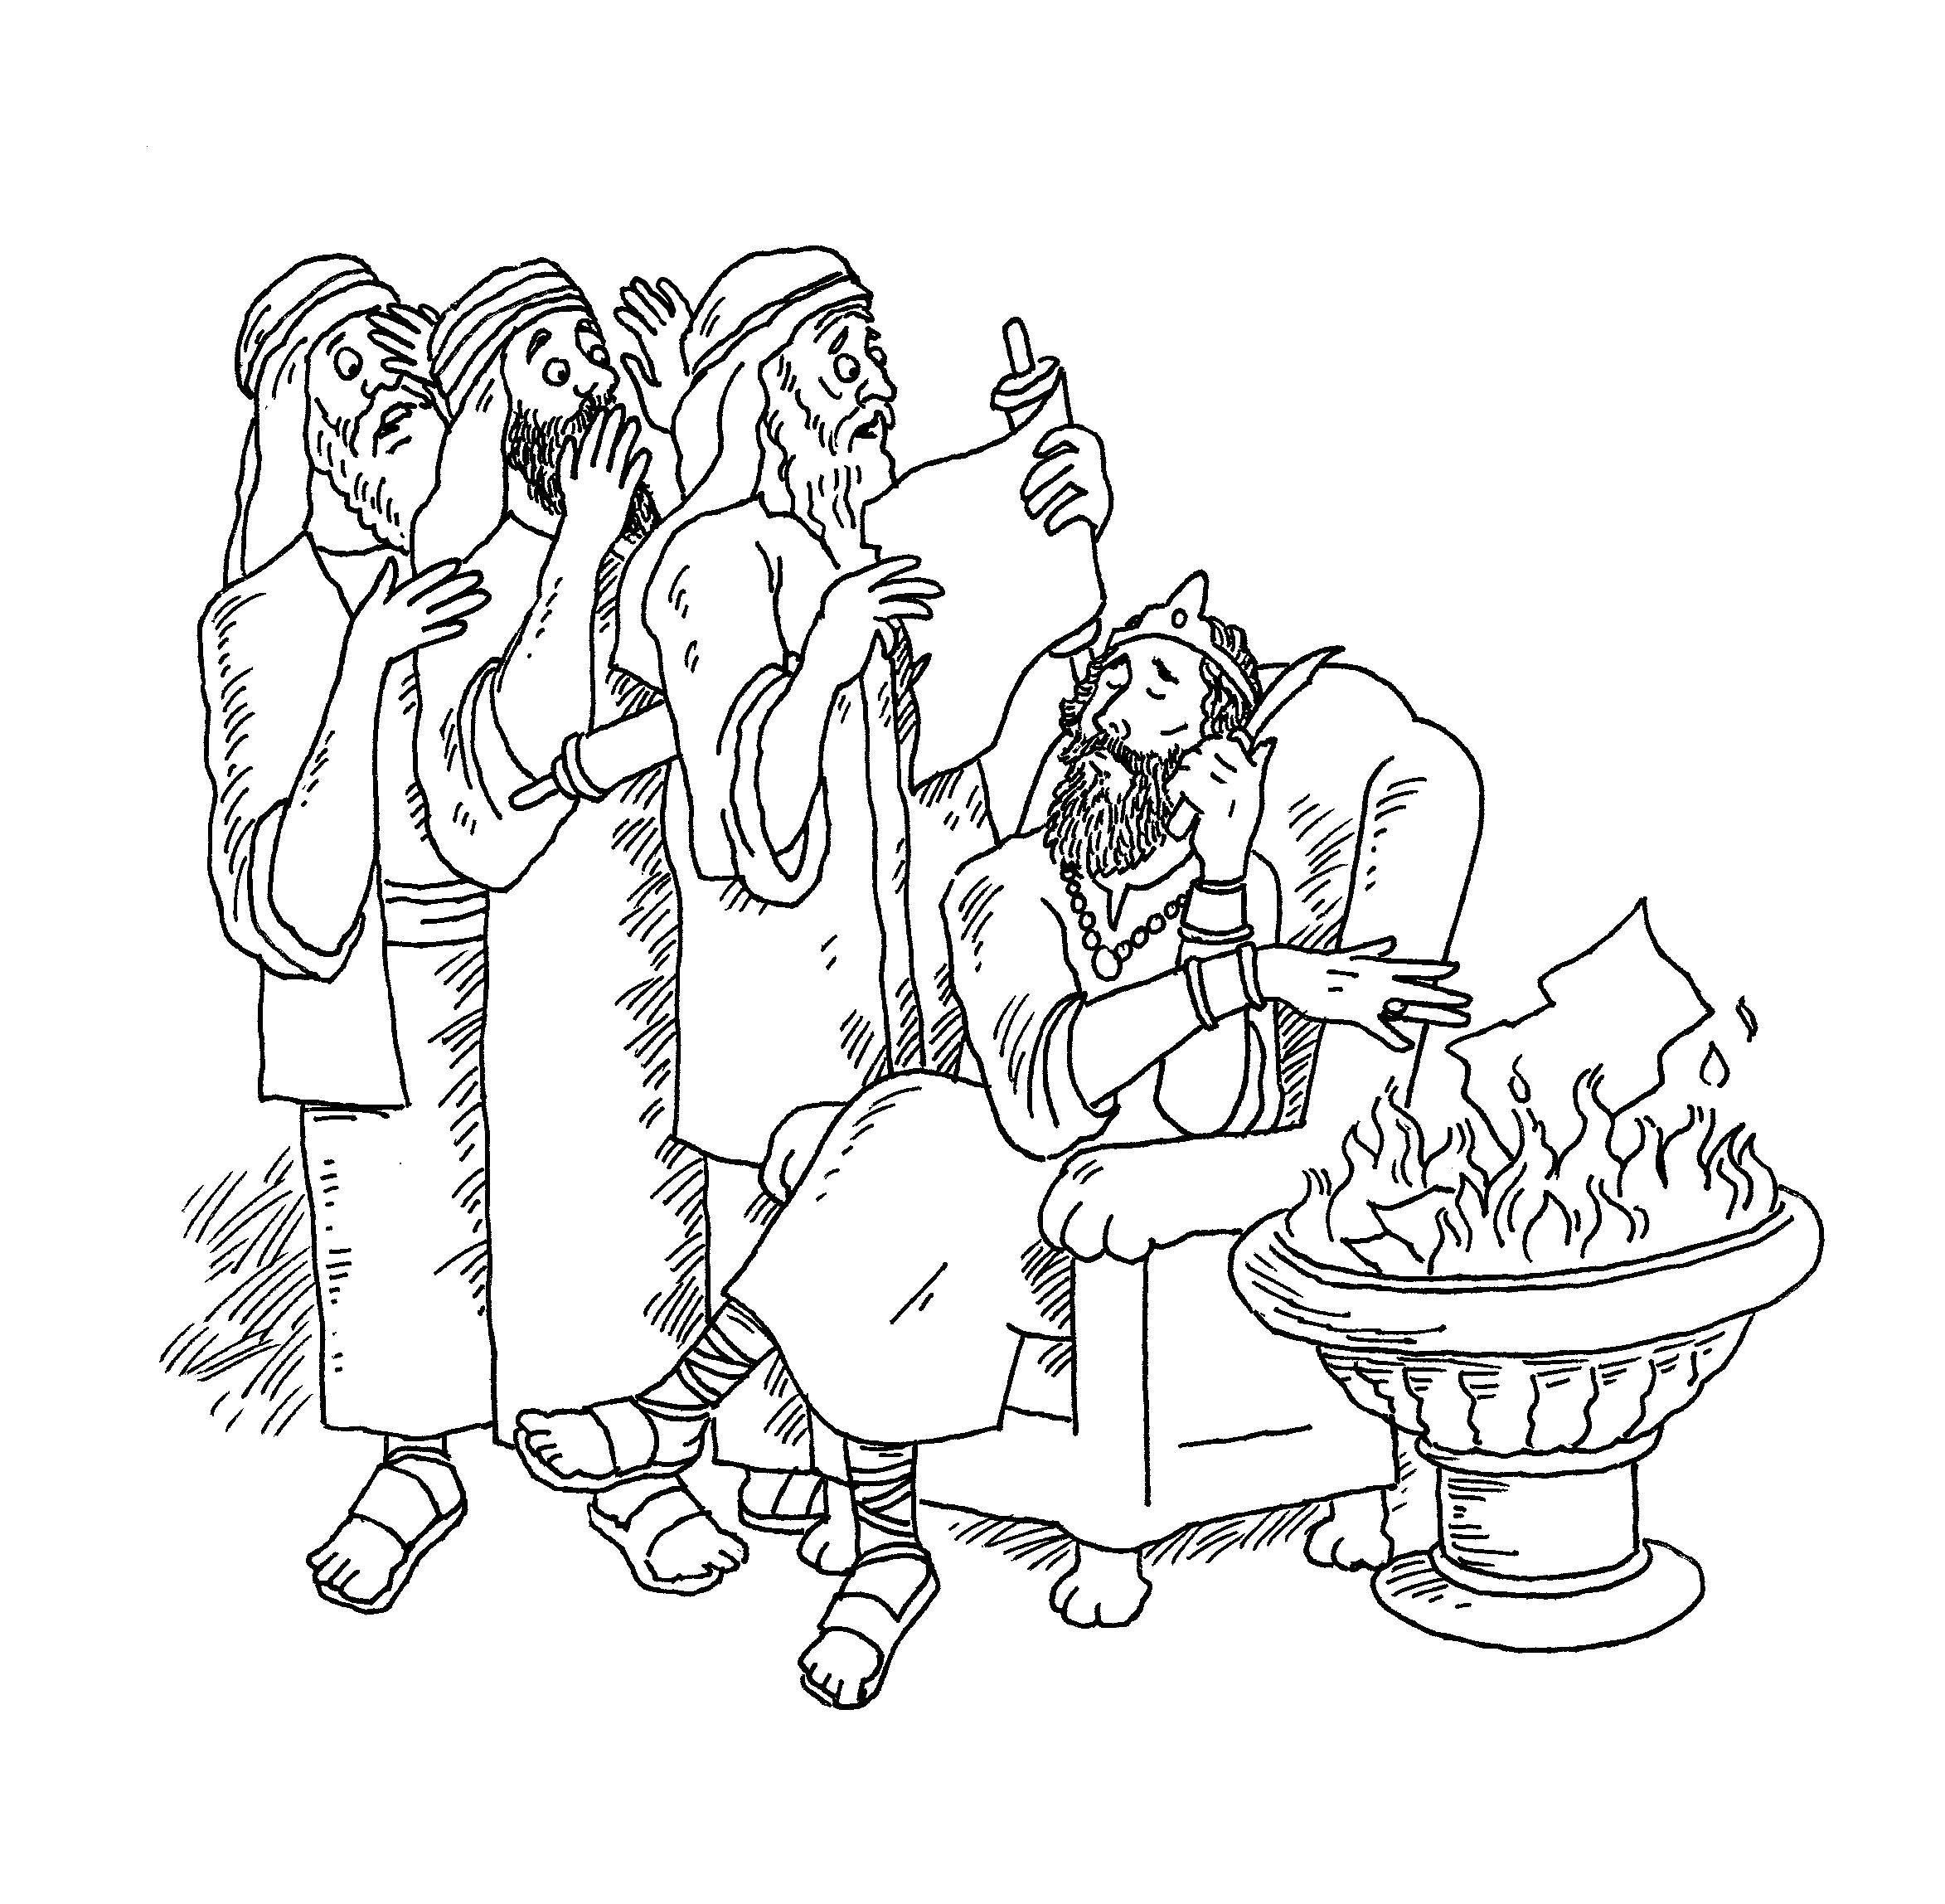 king josiah coloring page